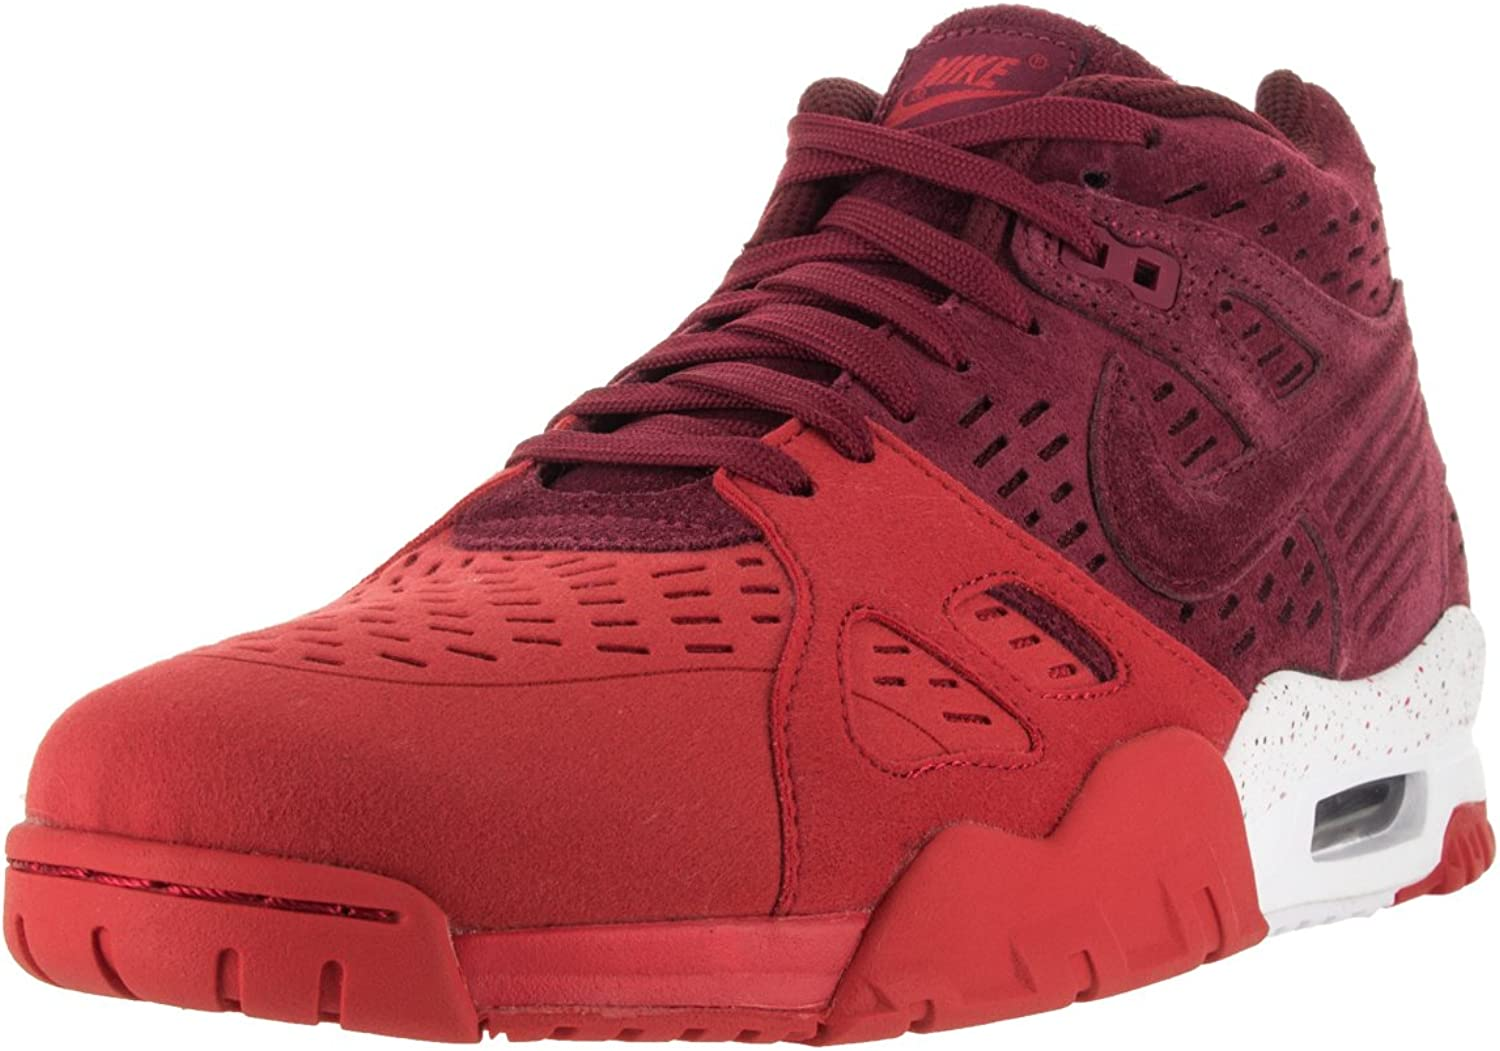 Nike Men's Air Trainer 3 Le Running shoes